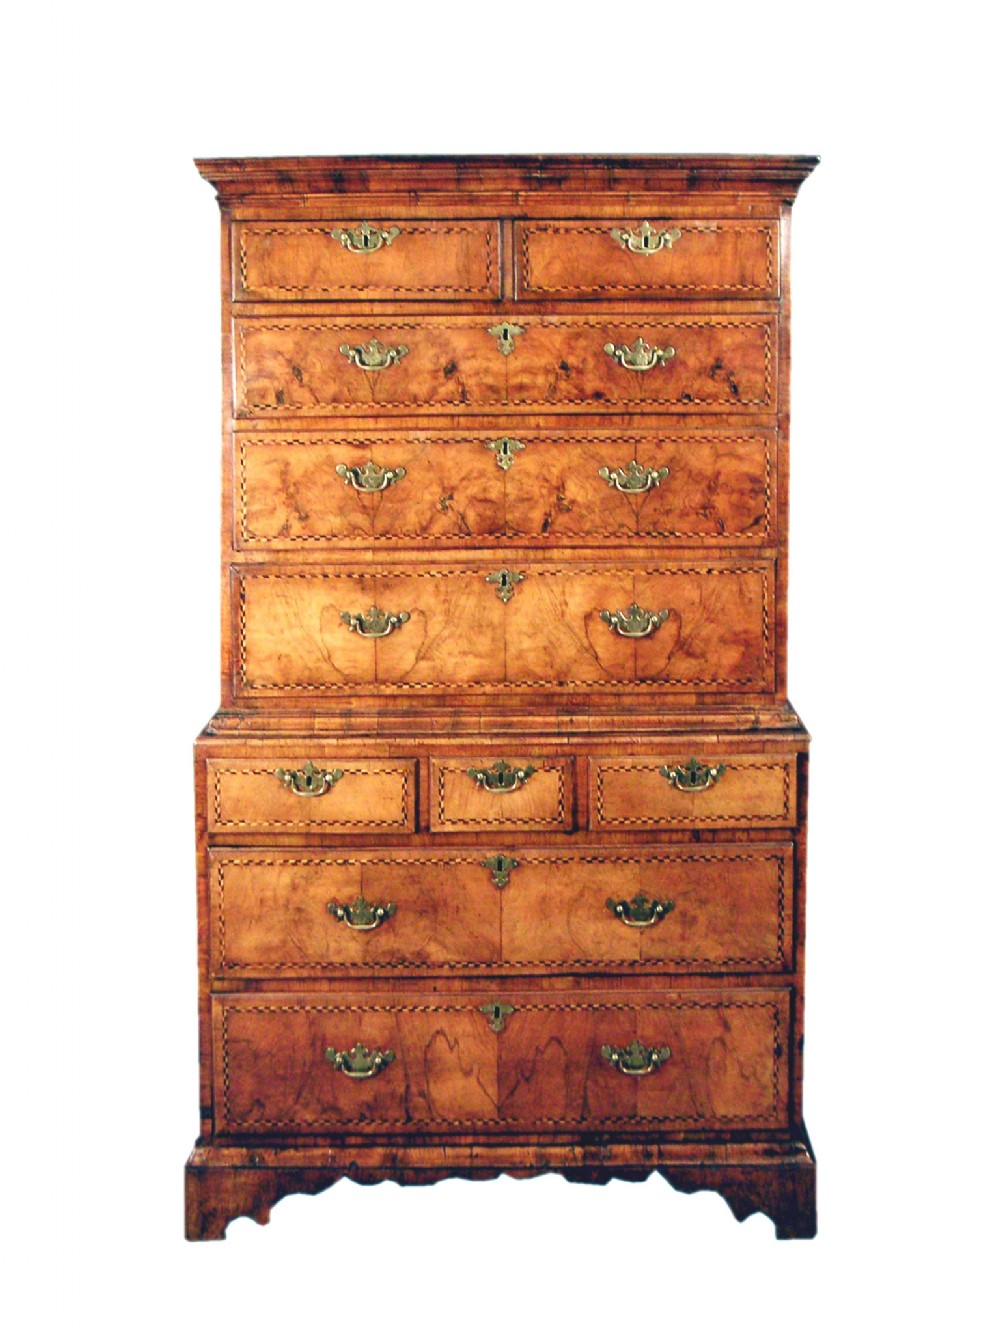 mid 18th century figured walnut tallboy